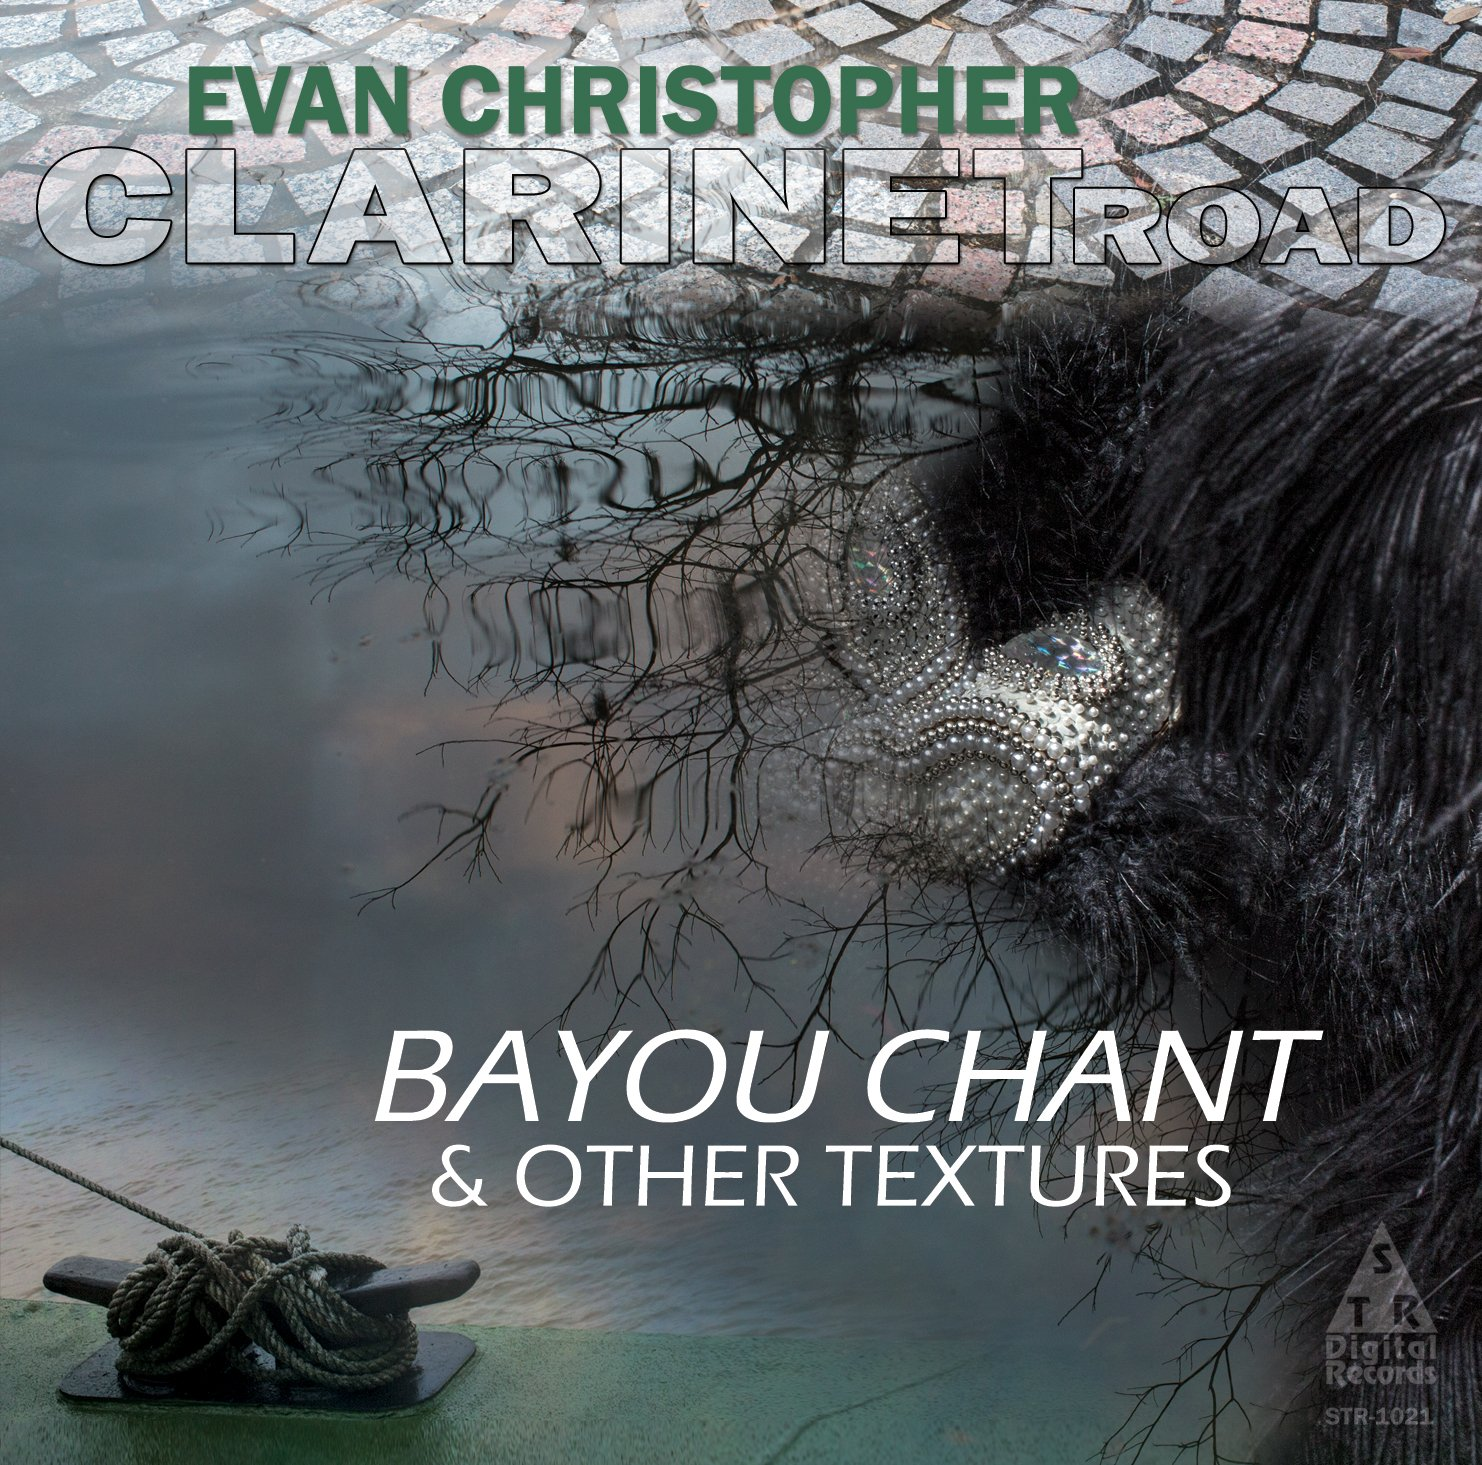 Cheap mail order specialty store Bayou Some reservation Chant